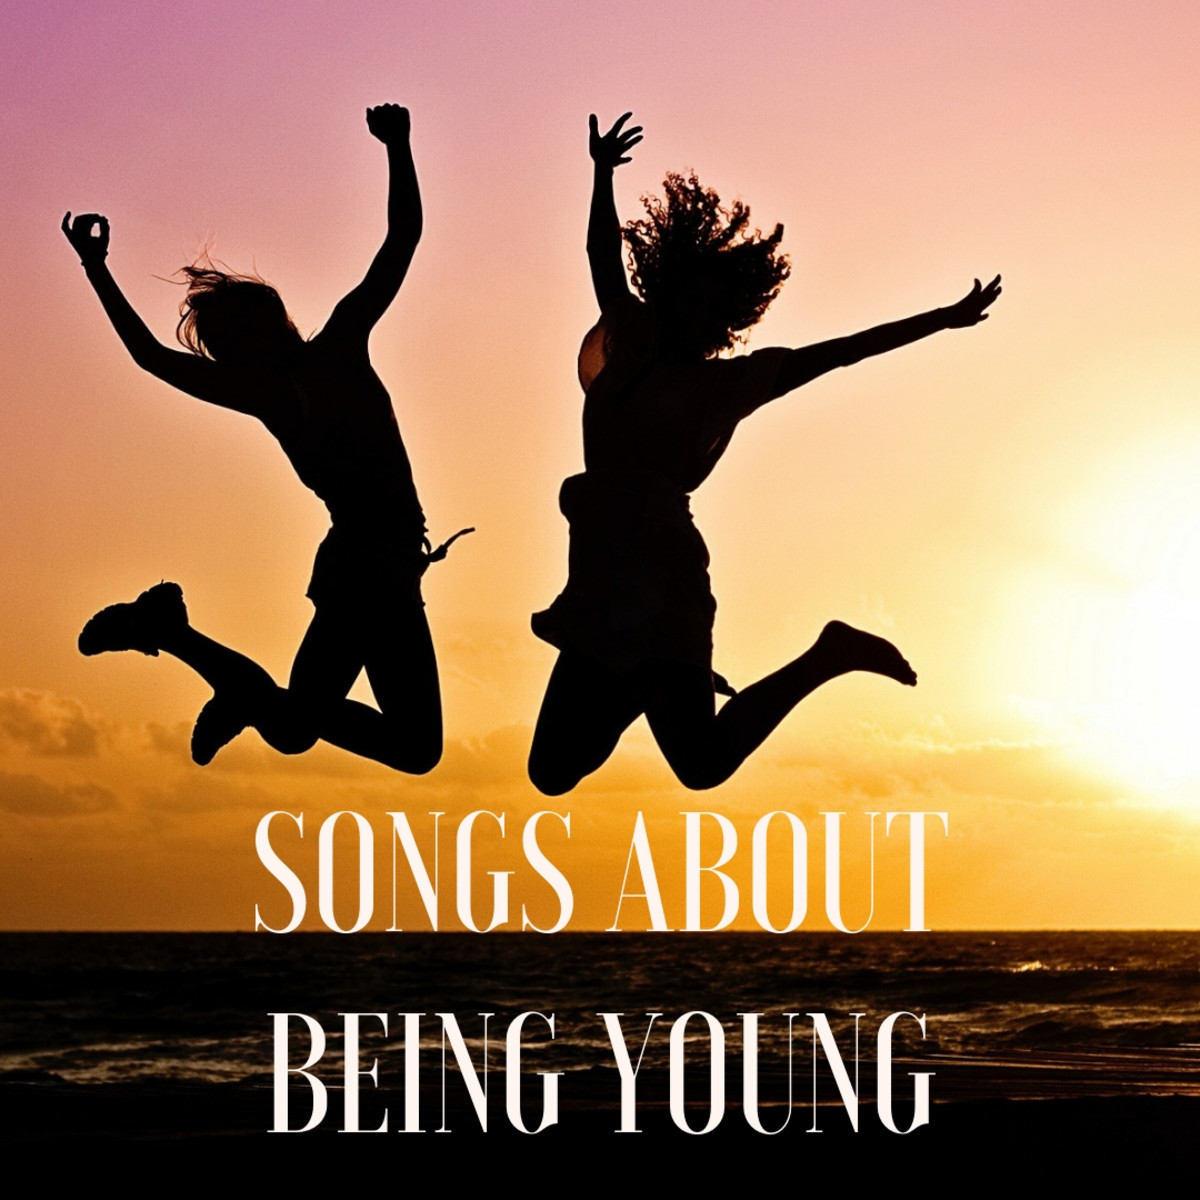 Celebrate the joy and freedom of being young with a playlist of pop, rock, and country songs about being young and young at heart. While you're truly only young once, if you do it right, then the memories will last you a lifetime.